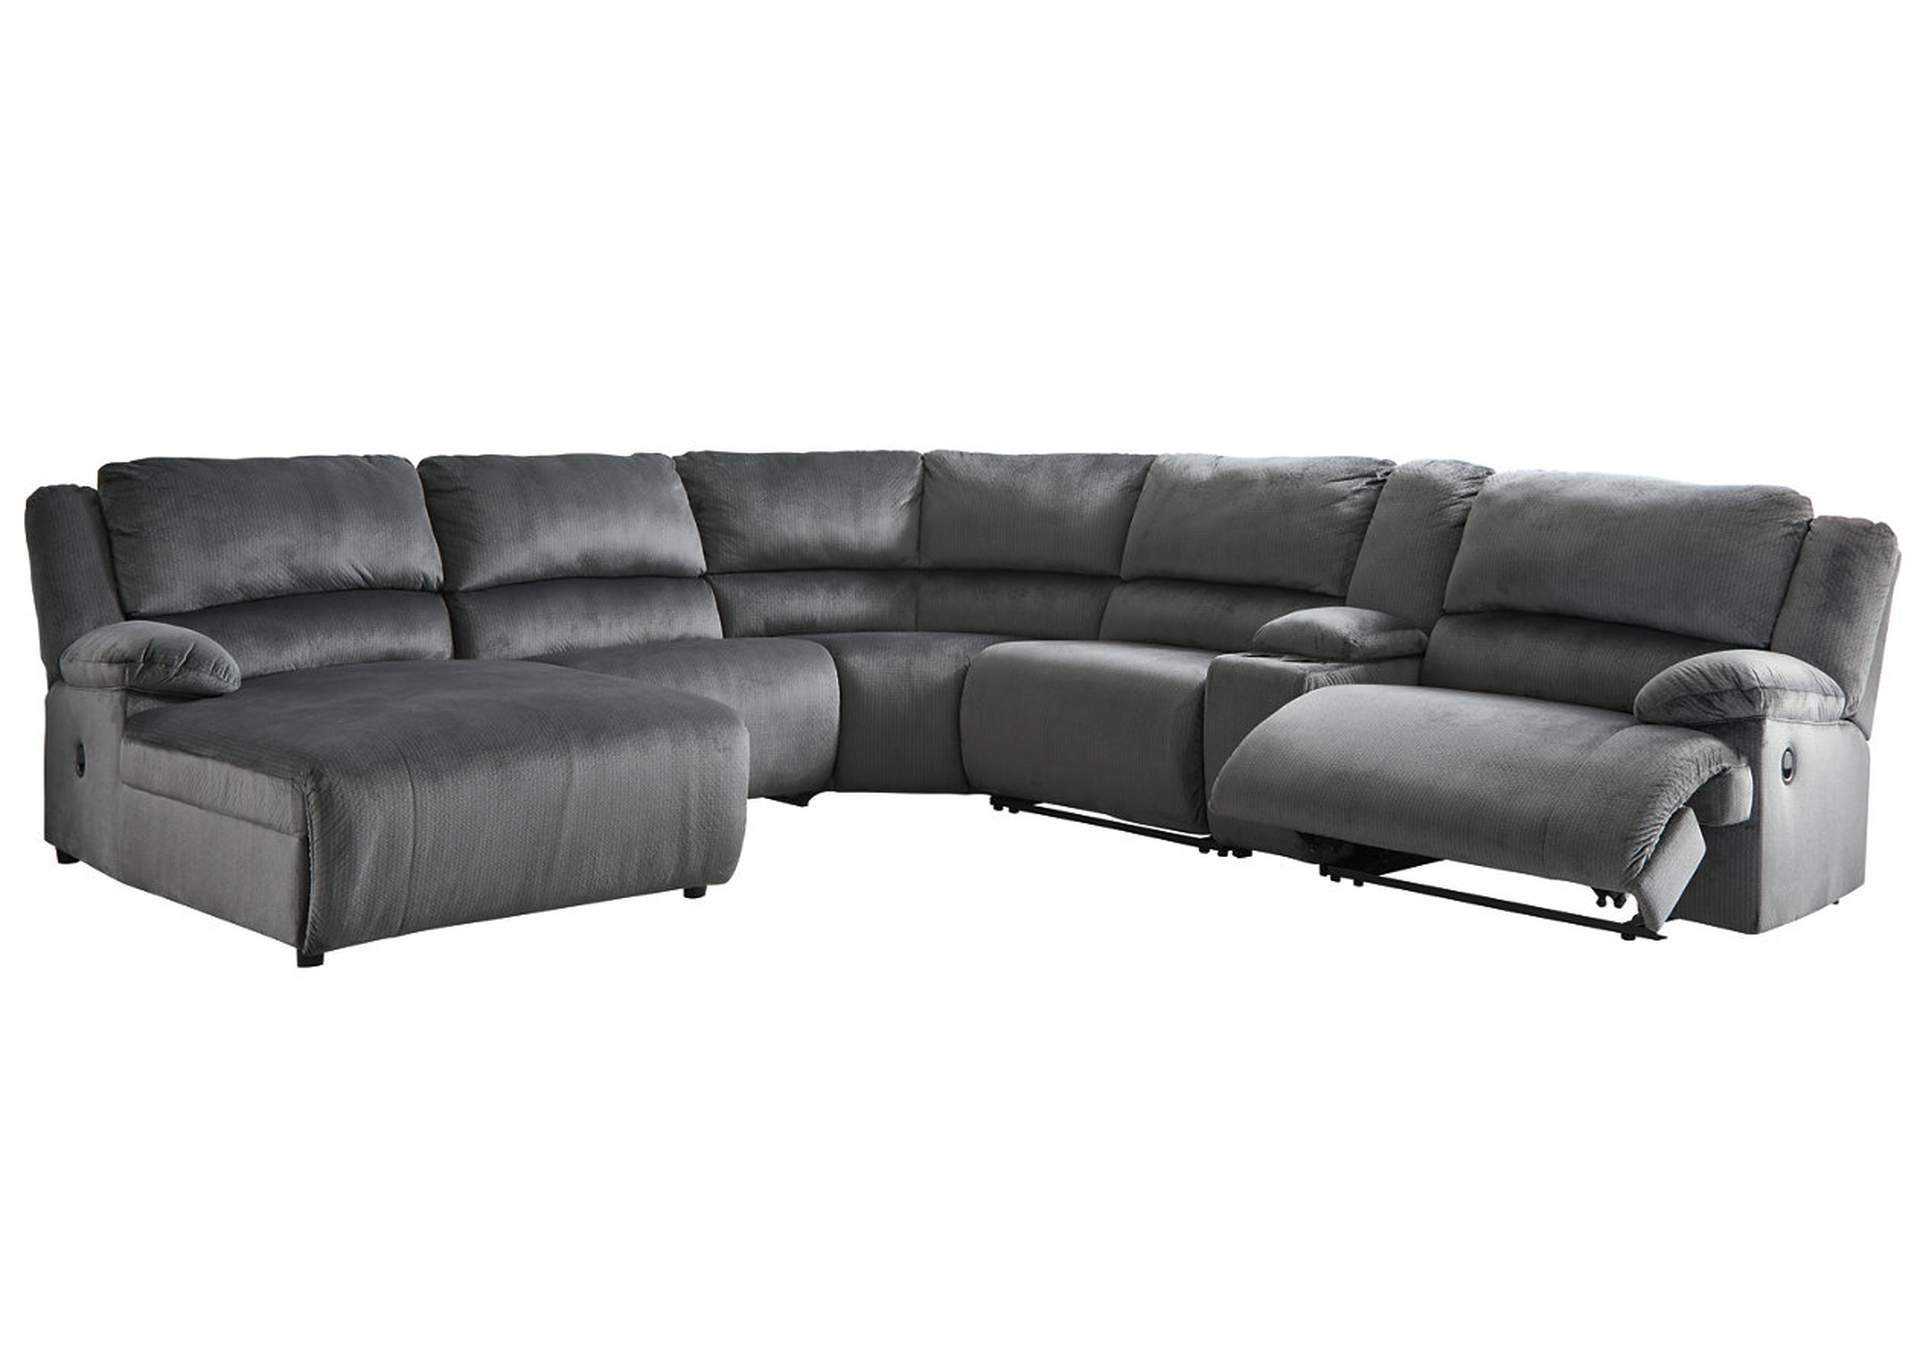 Clonmel Charcoal Reclining LAF Chaise Sectional w/Console,Signature Design By Ashley